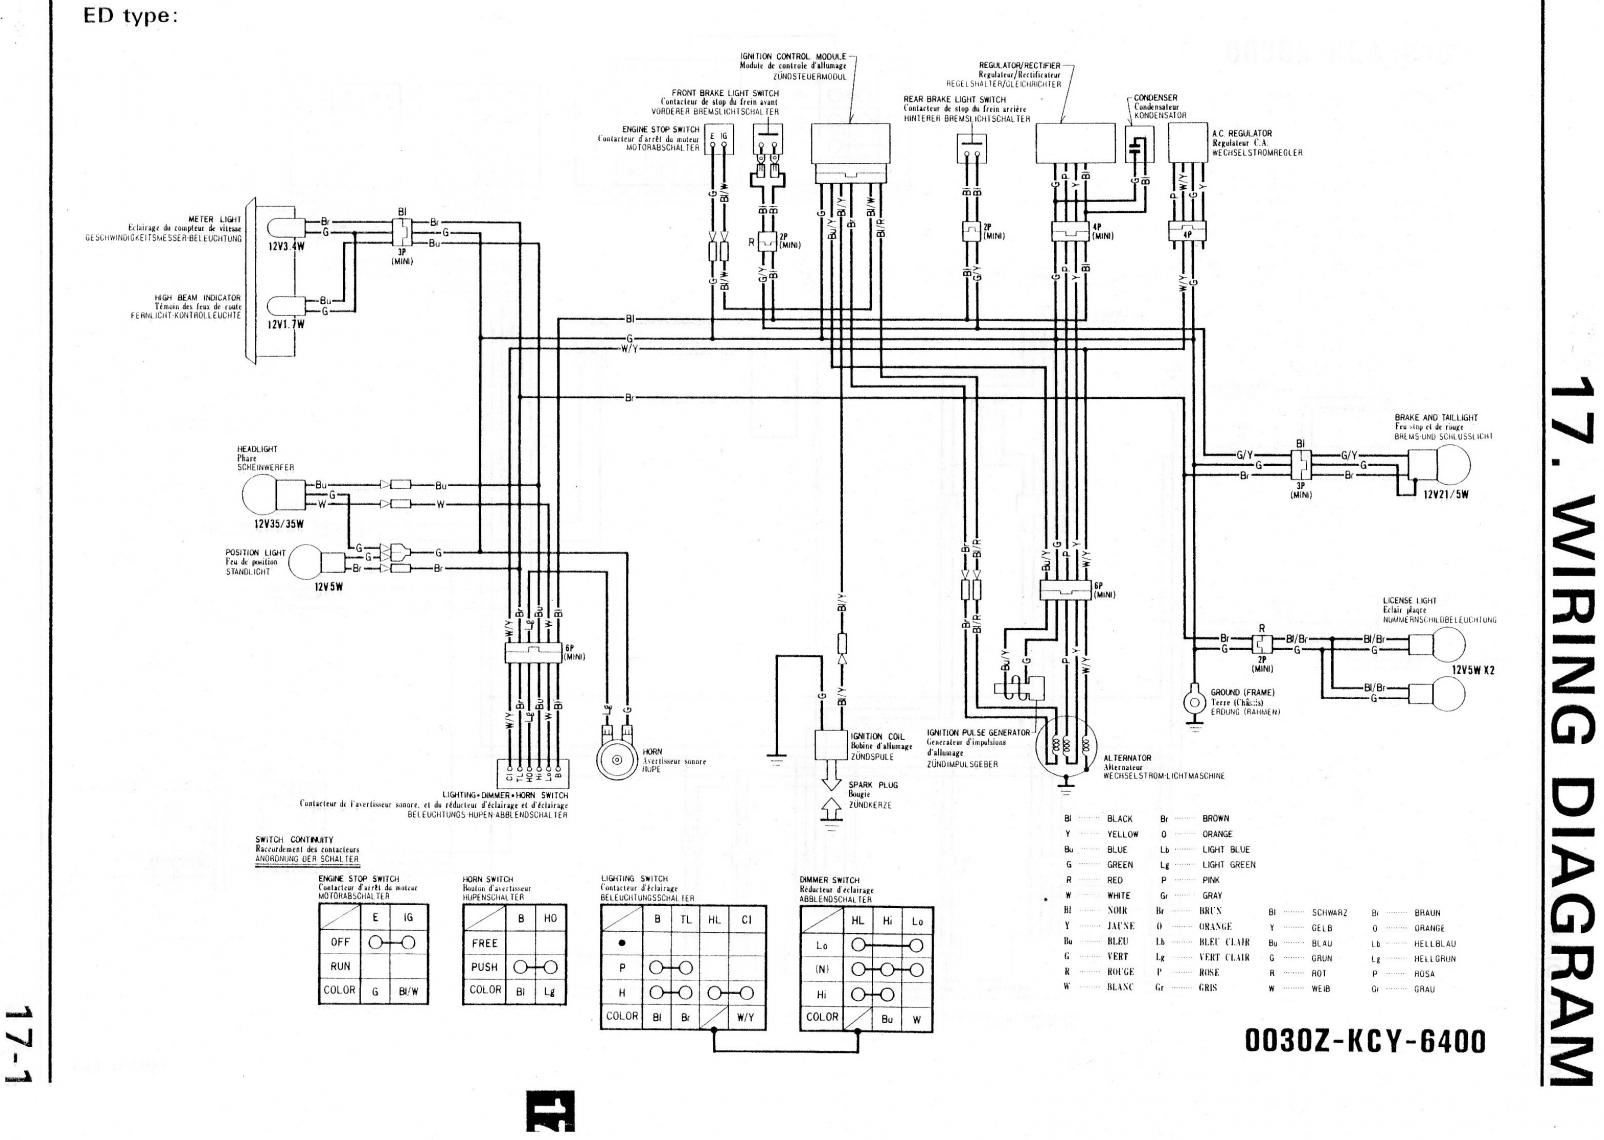 2002 saturn l200 fuse box diagram image details 2002 saturn l200 fuse box diagram